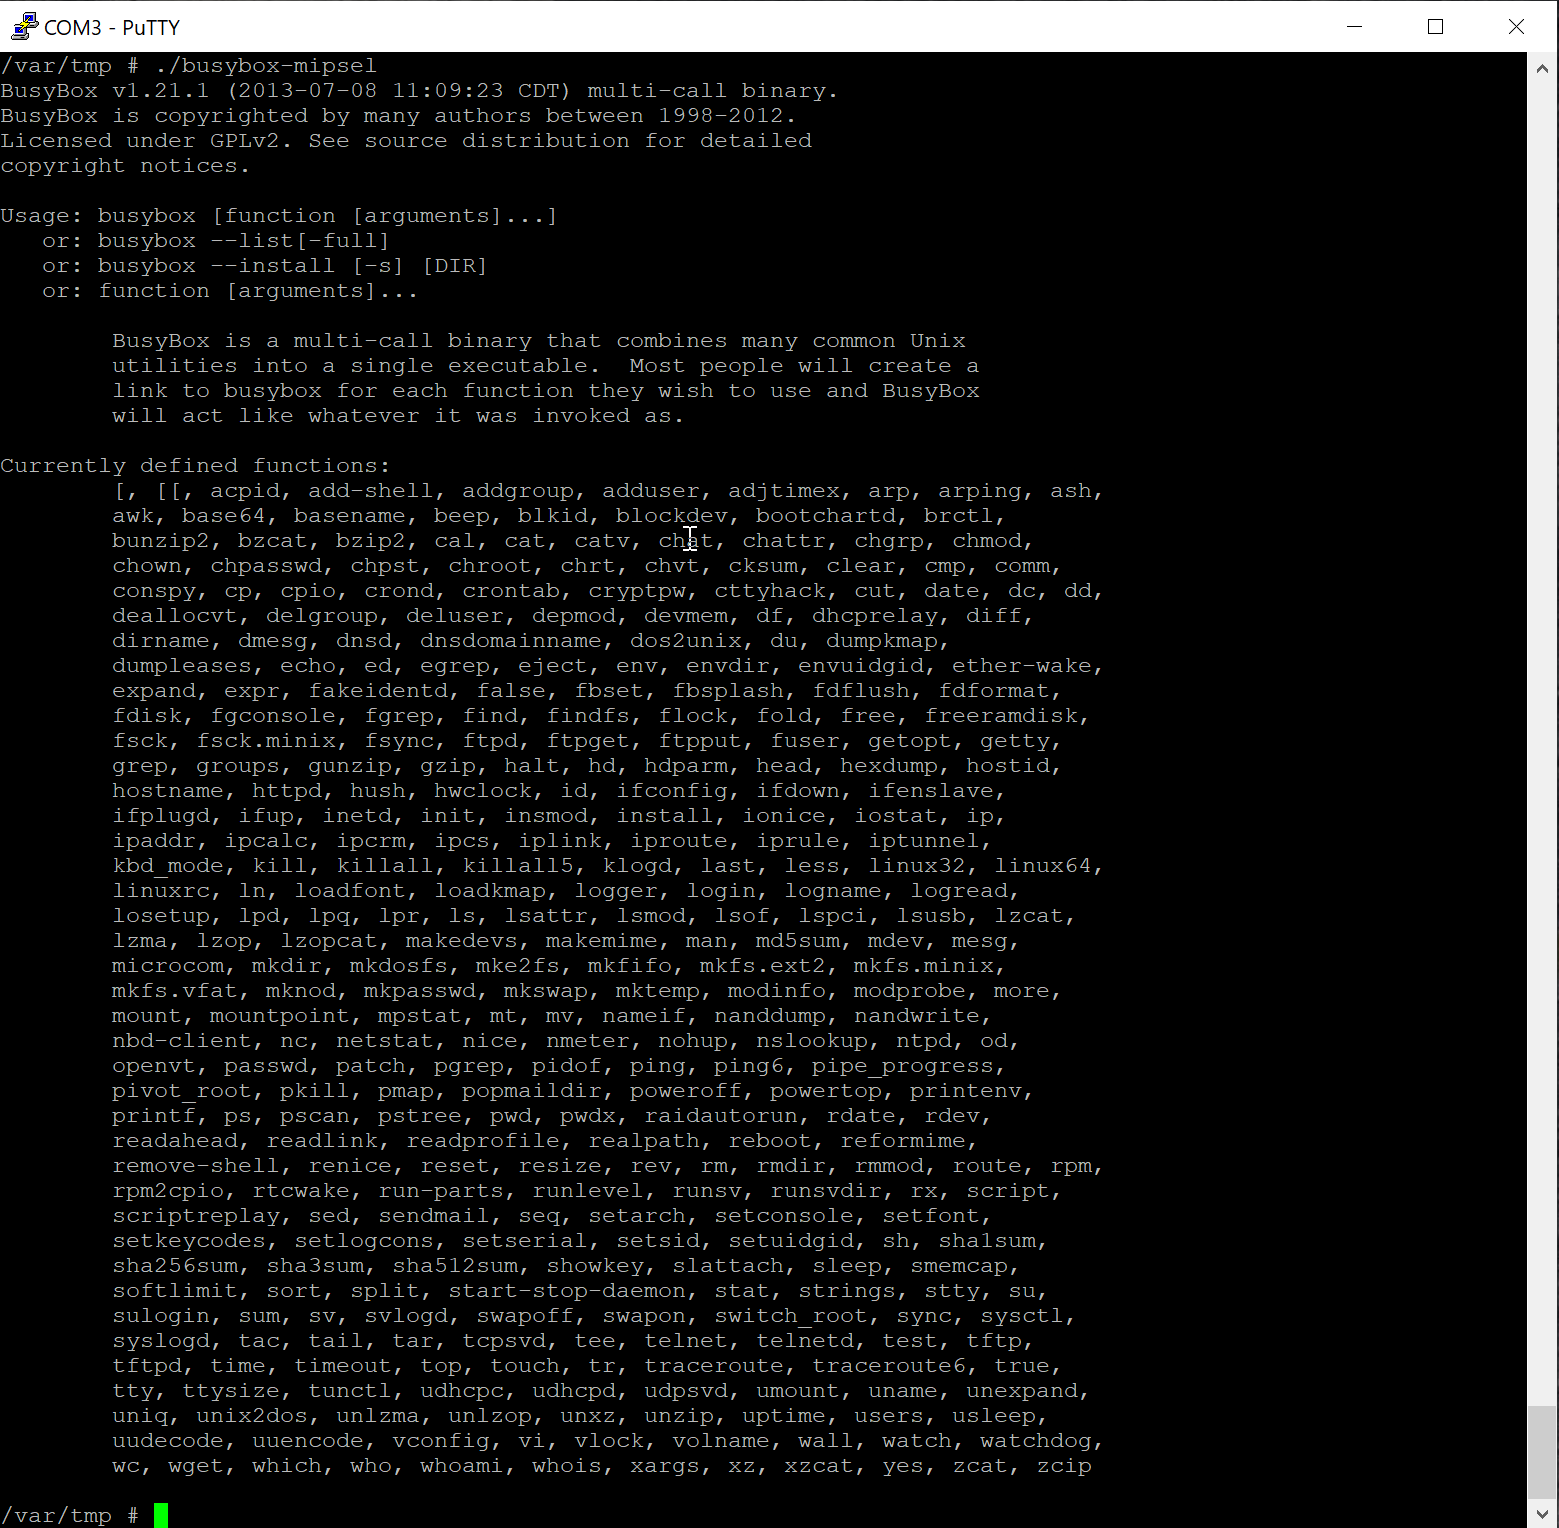 Figure 20 - Available commands with full BusyBox installed